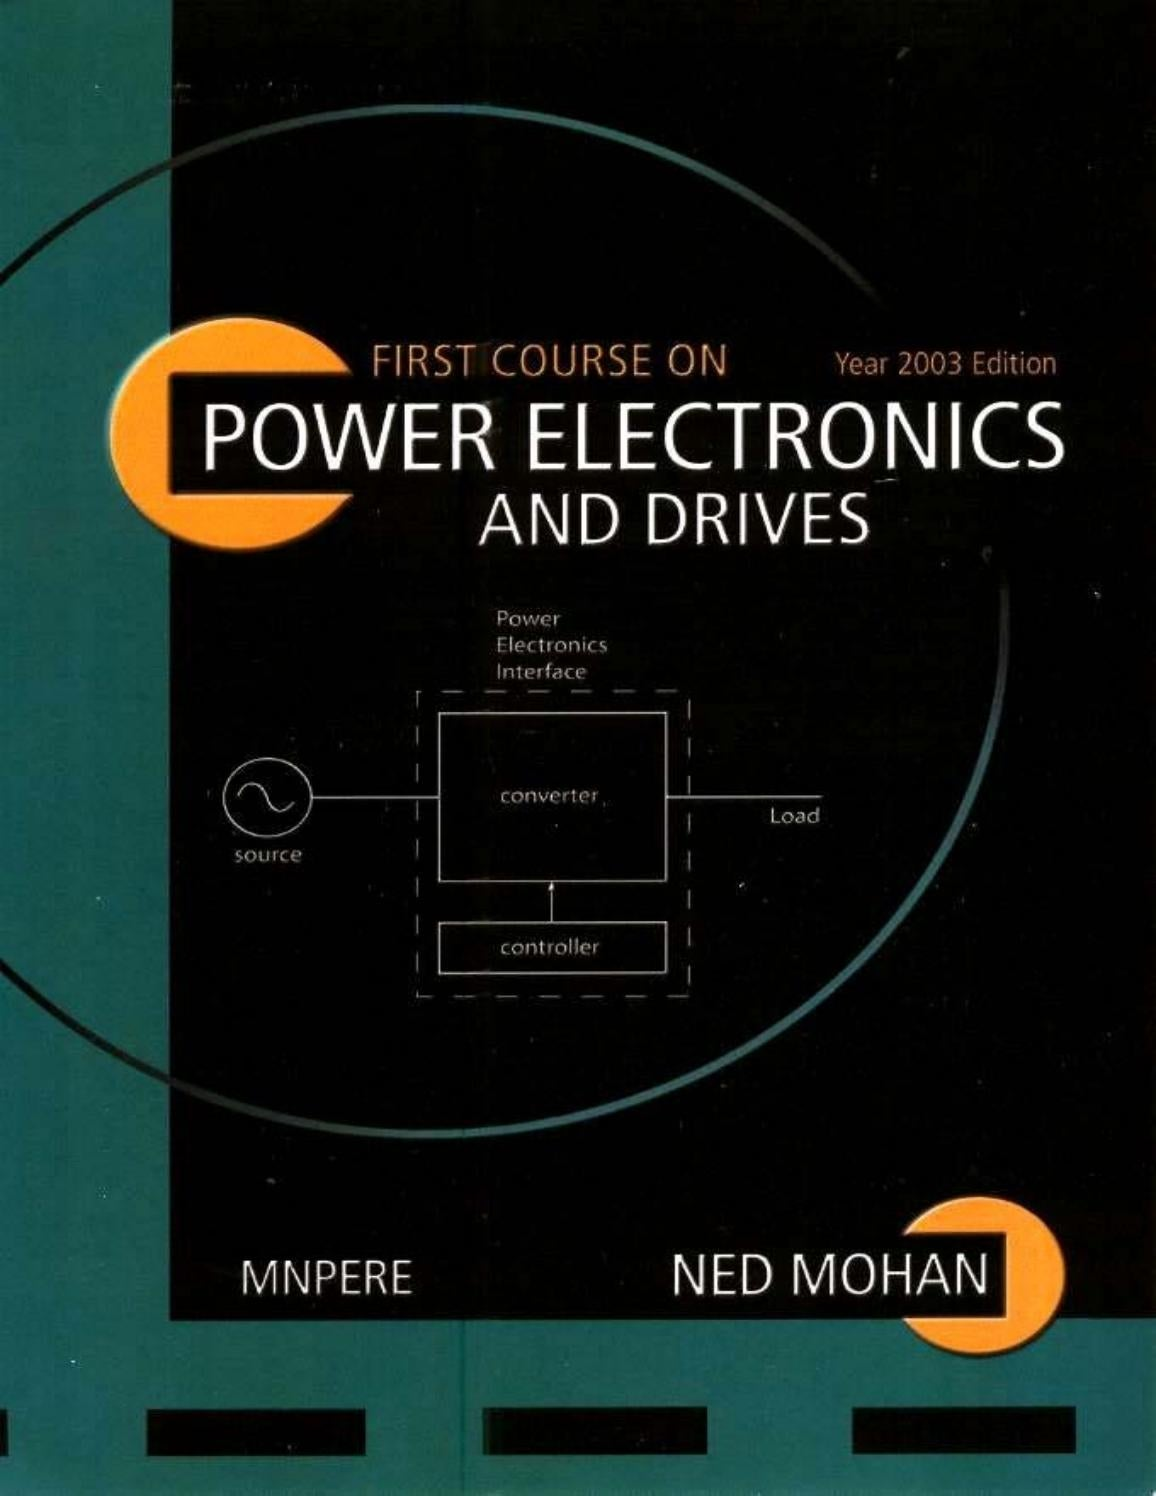 First Course on Power Electronics and Drives - Ned Mohan